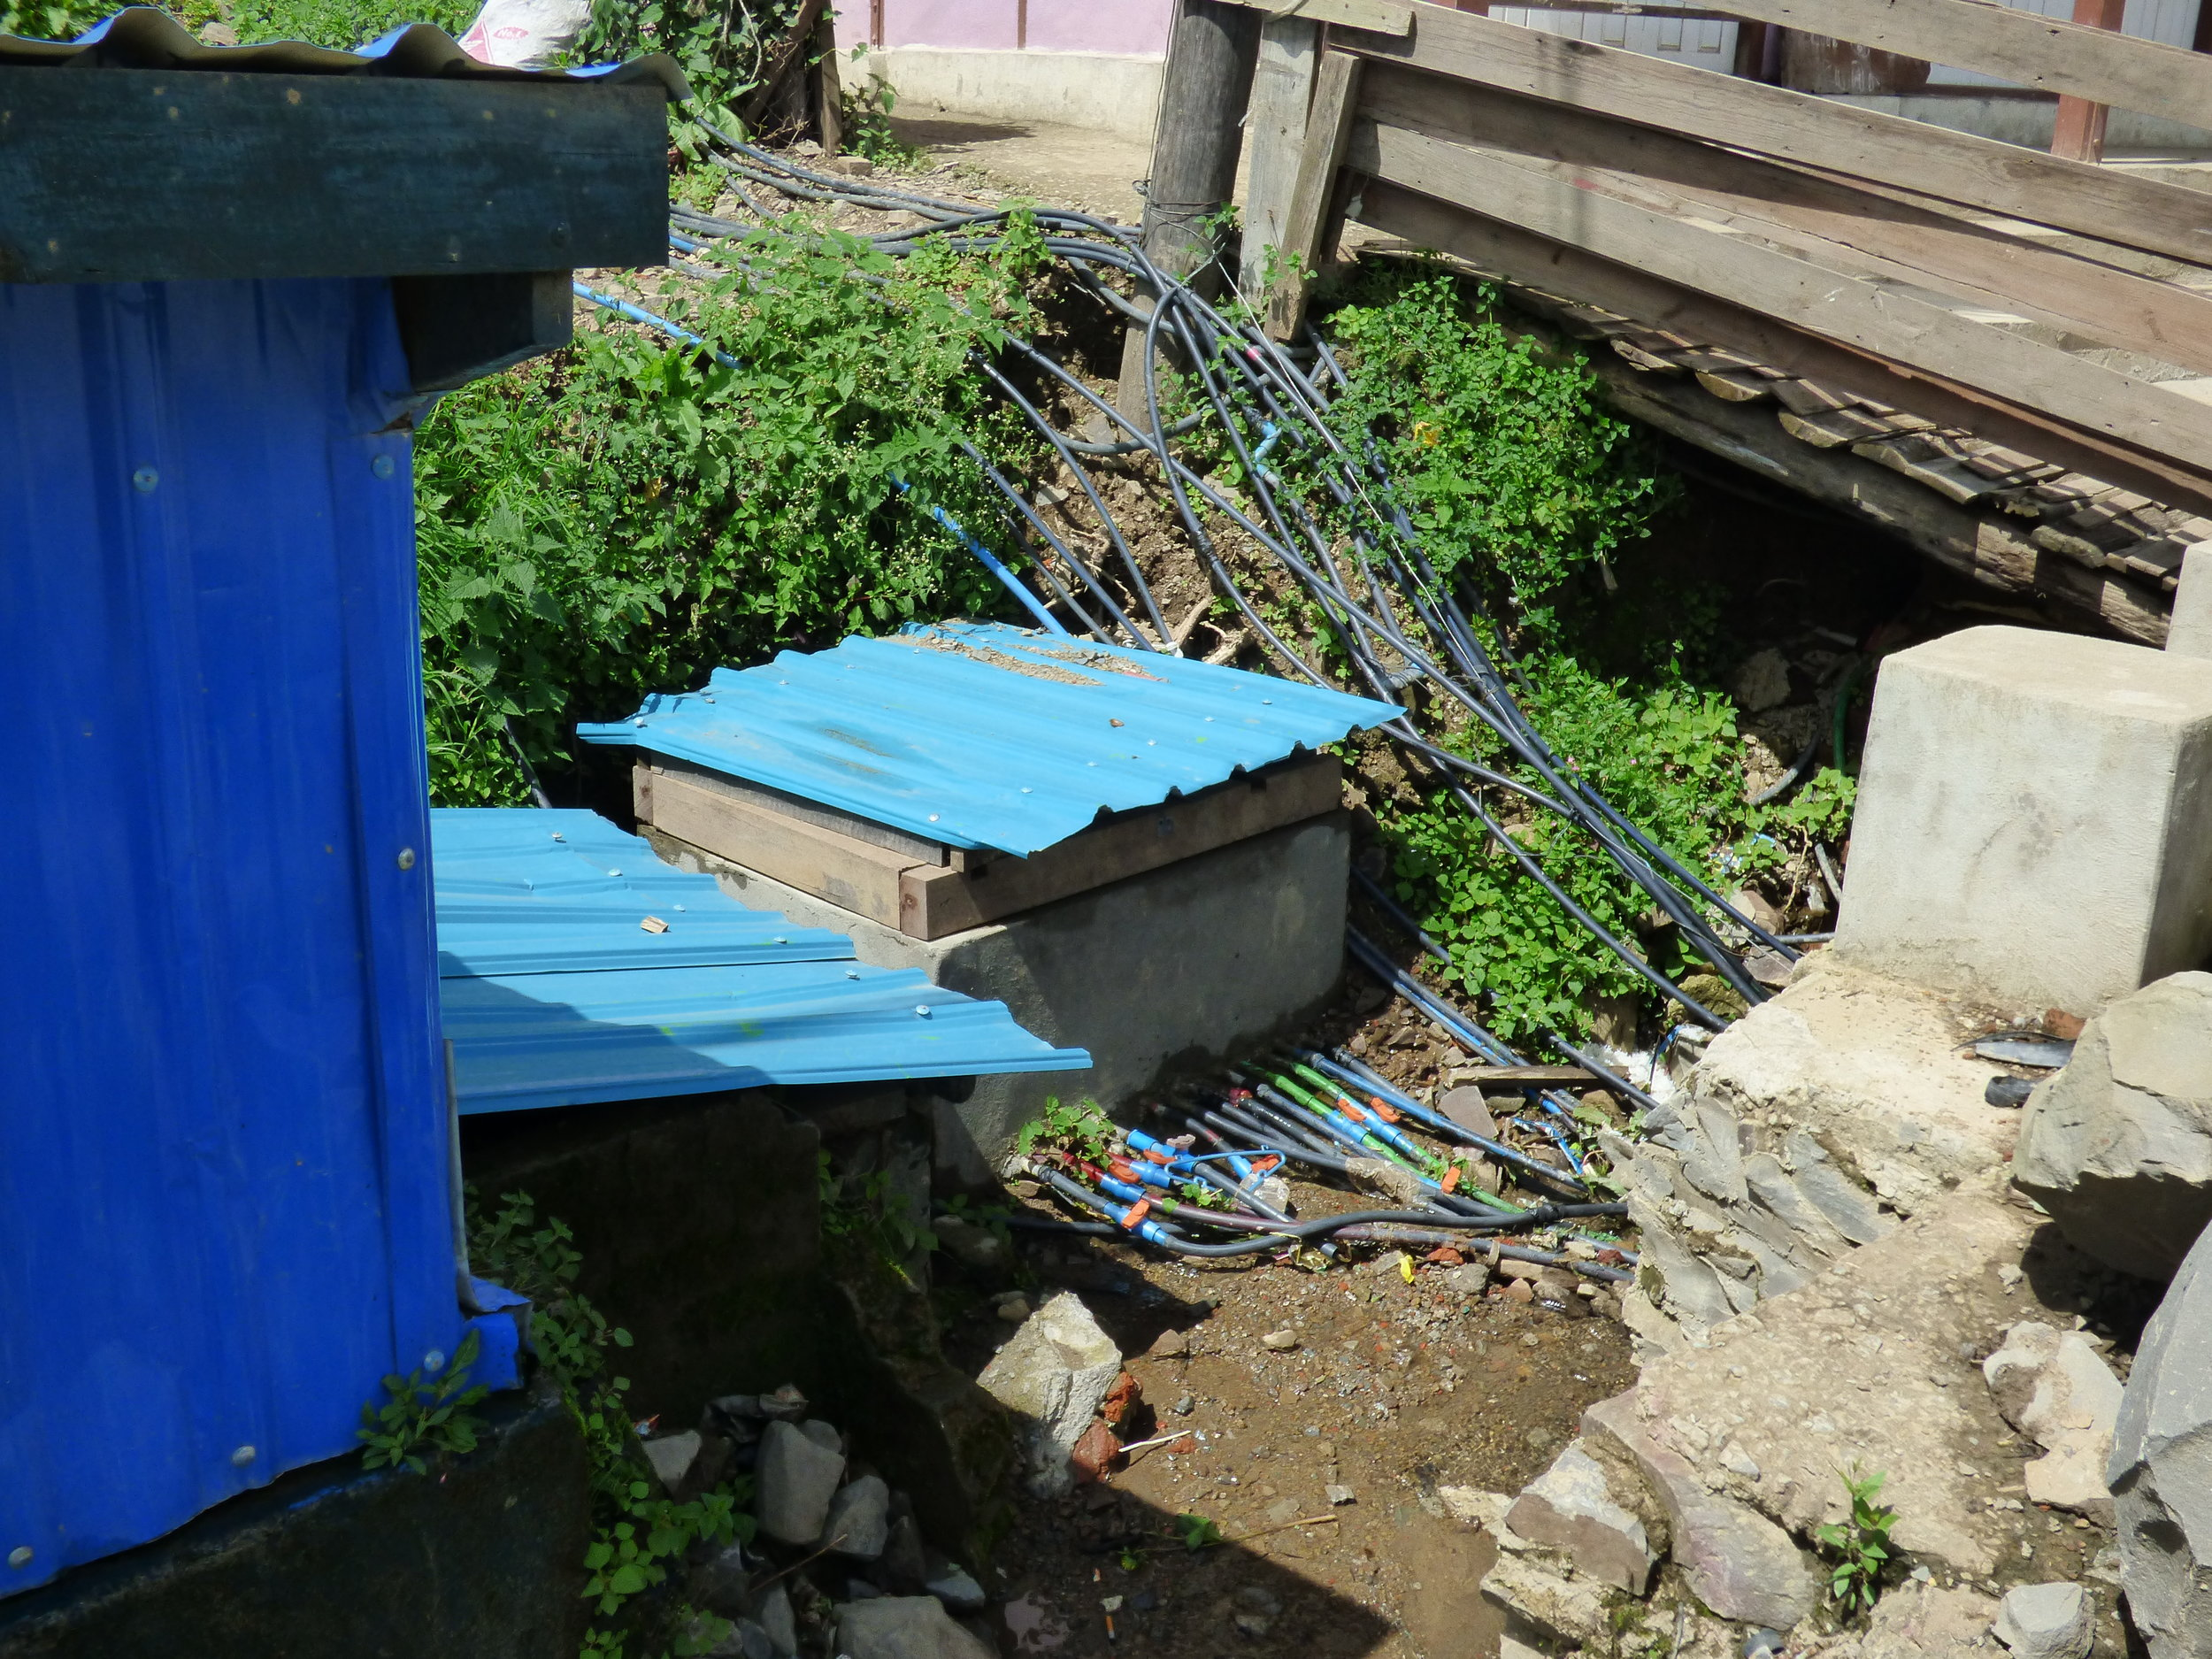 A spring source that distributes water to multiple houses in a block in the town